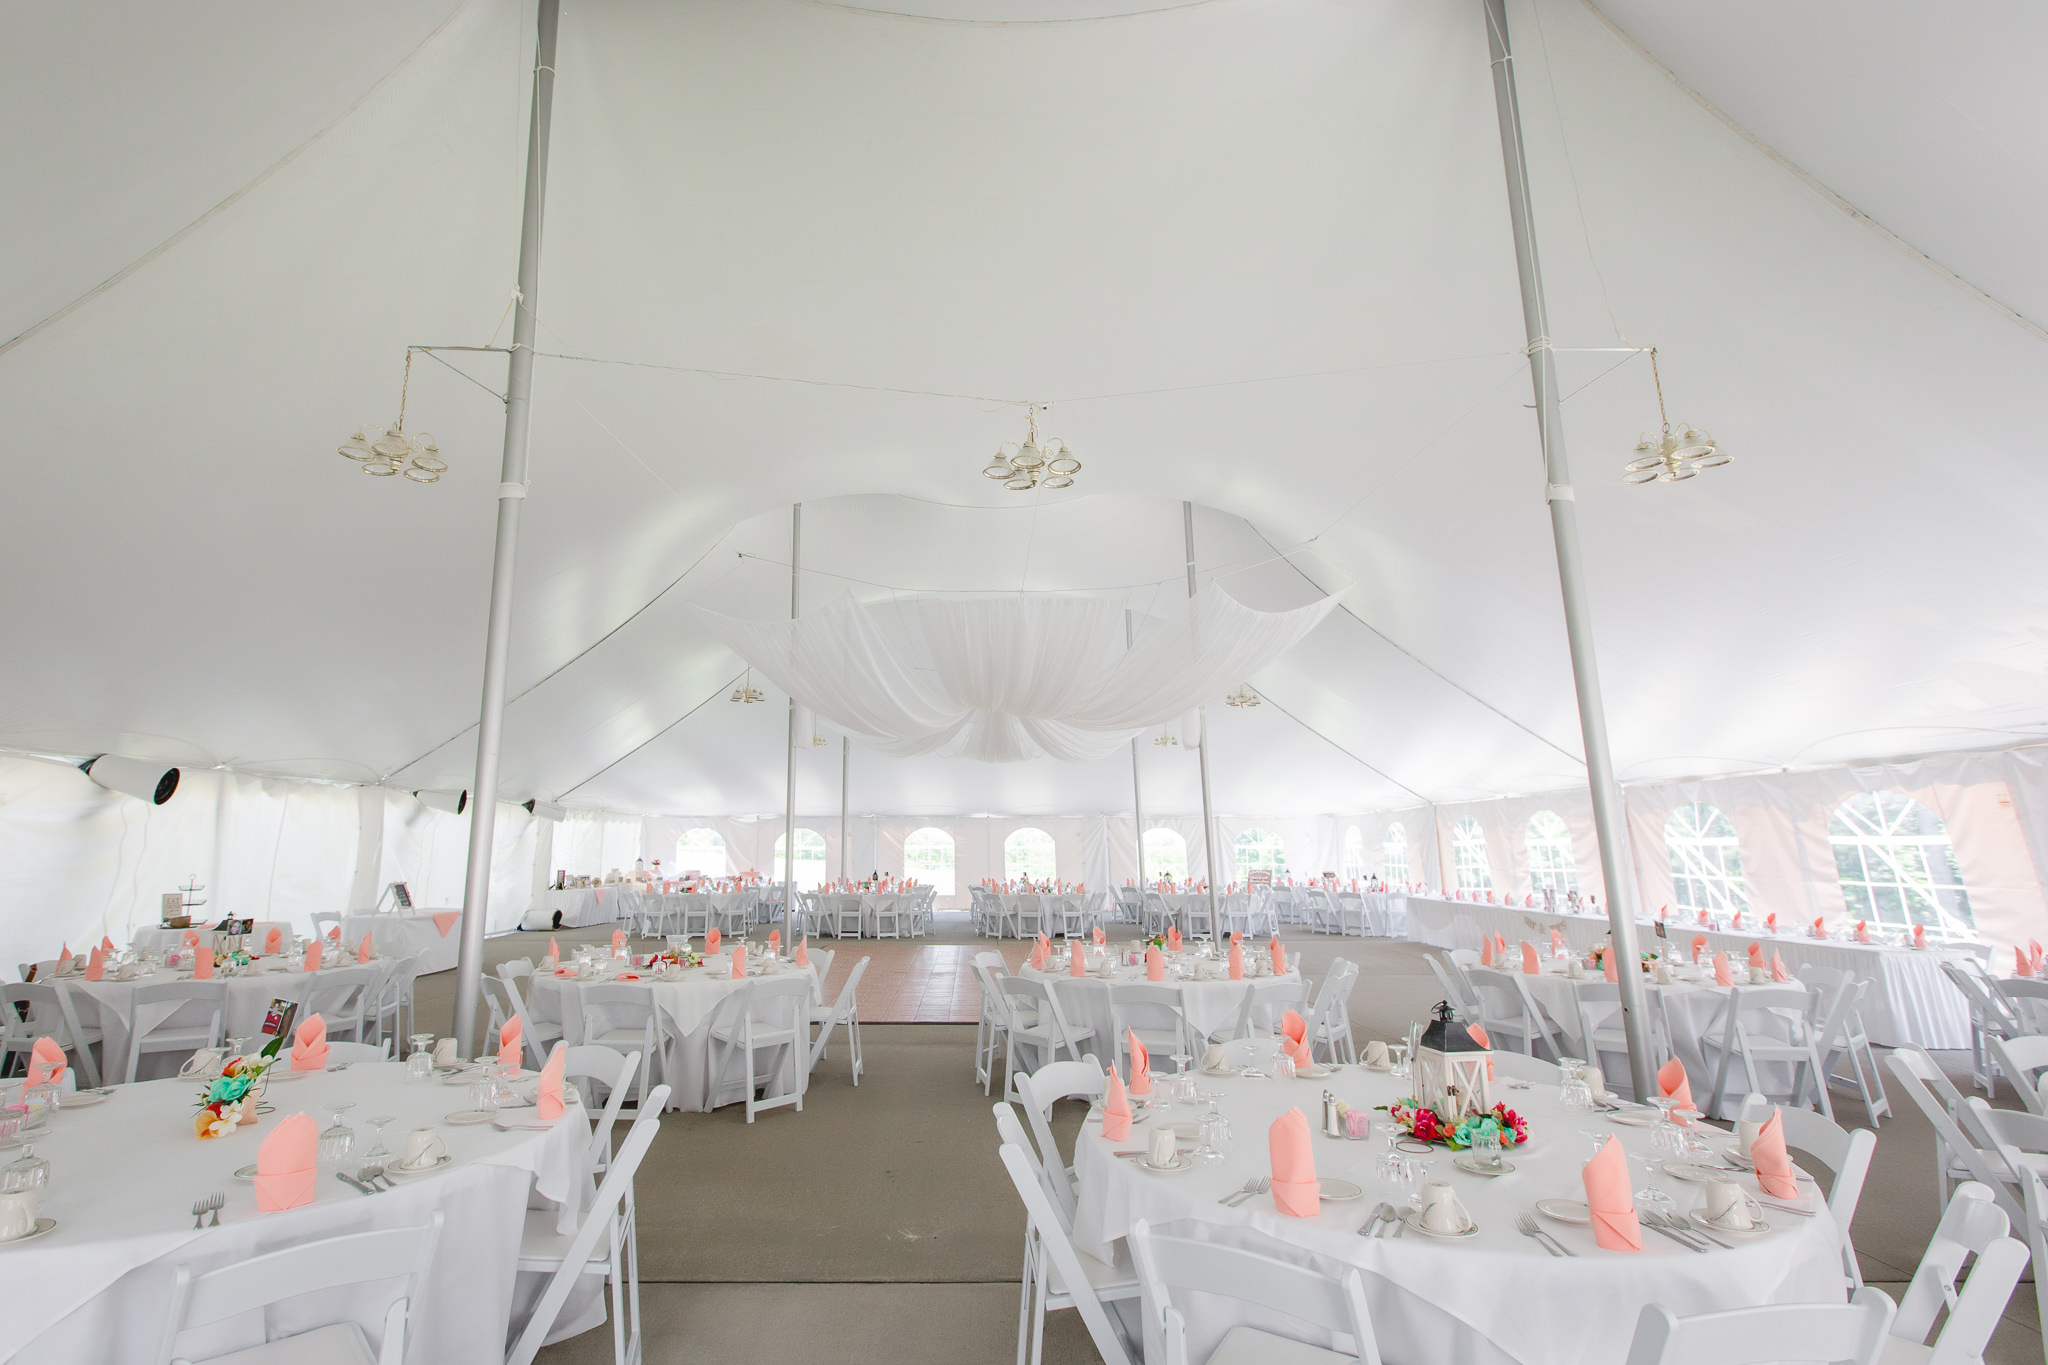 Reception tent at Linden Hall decorated for a wedding reception